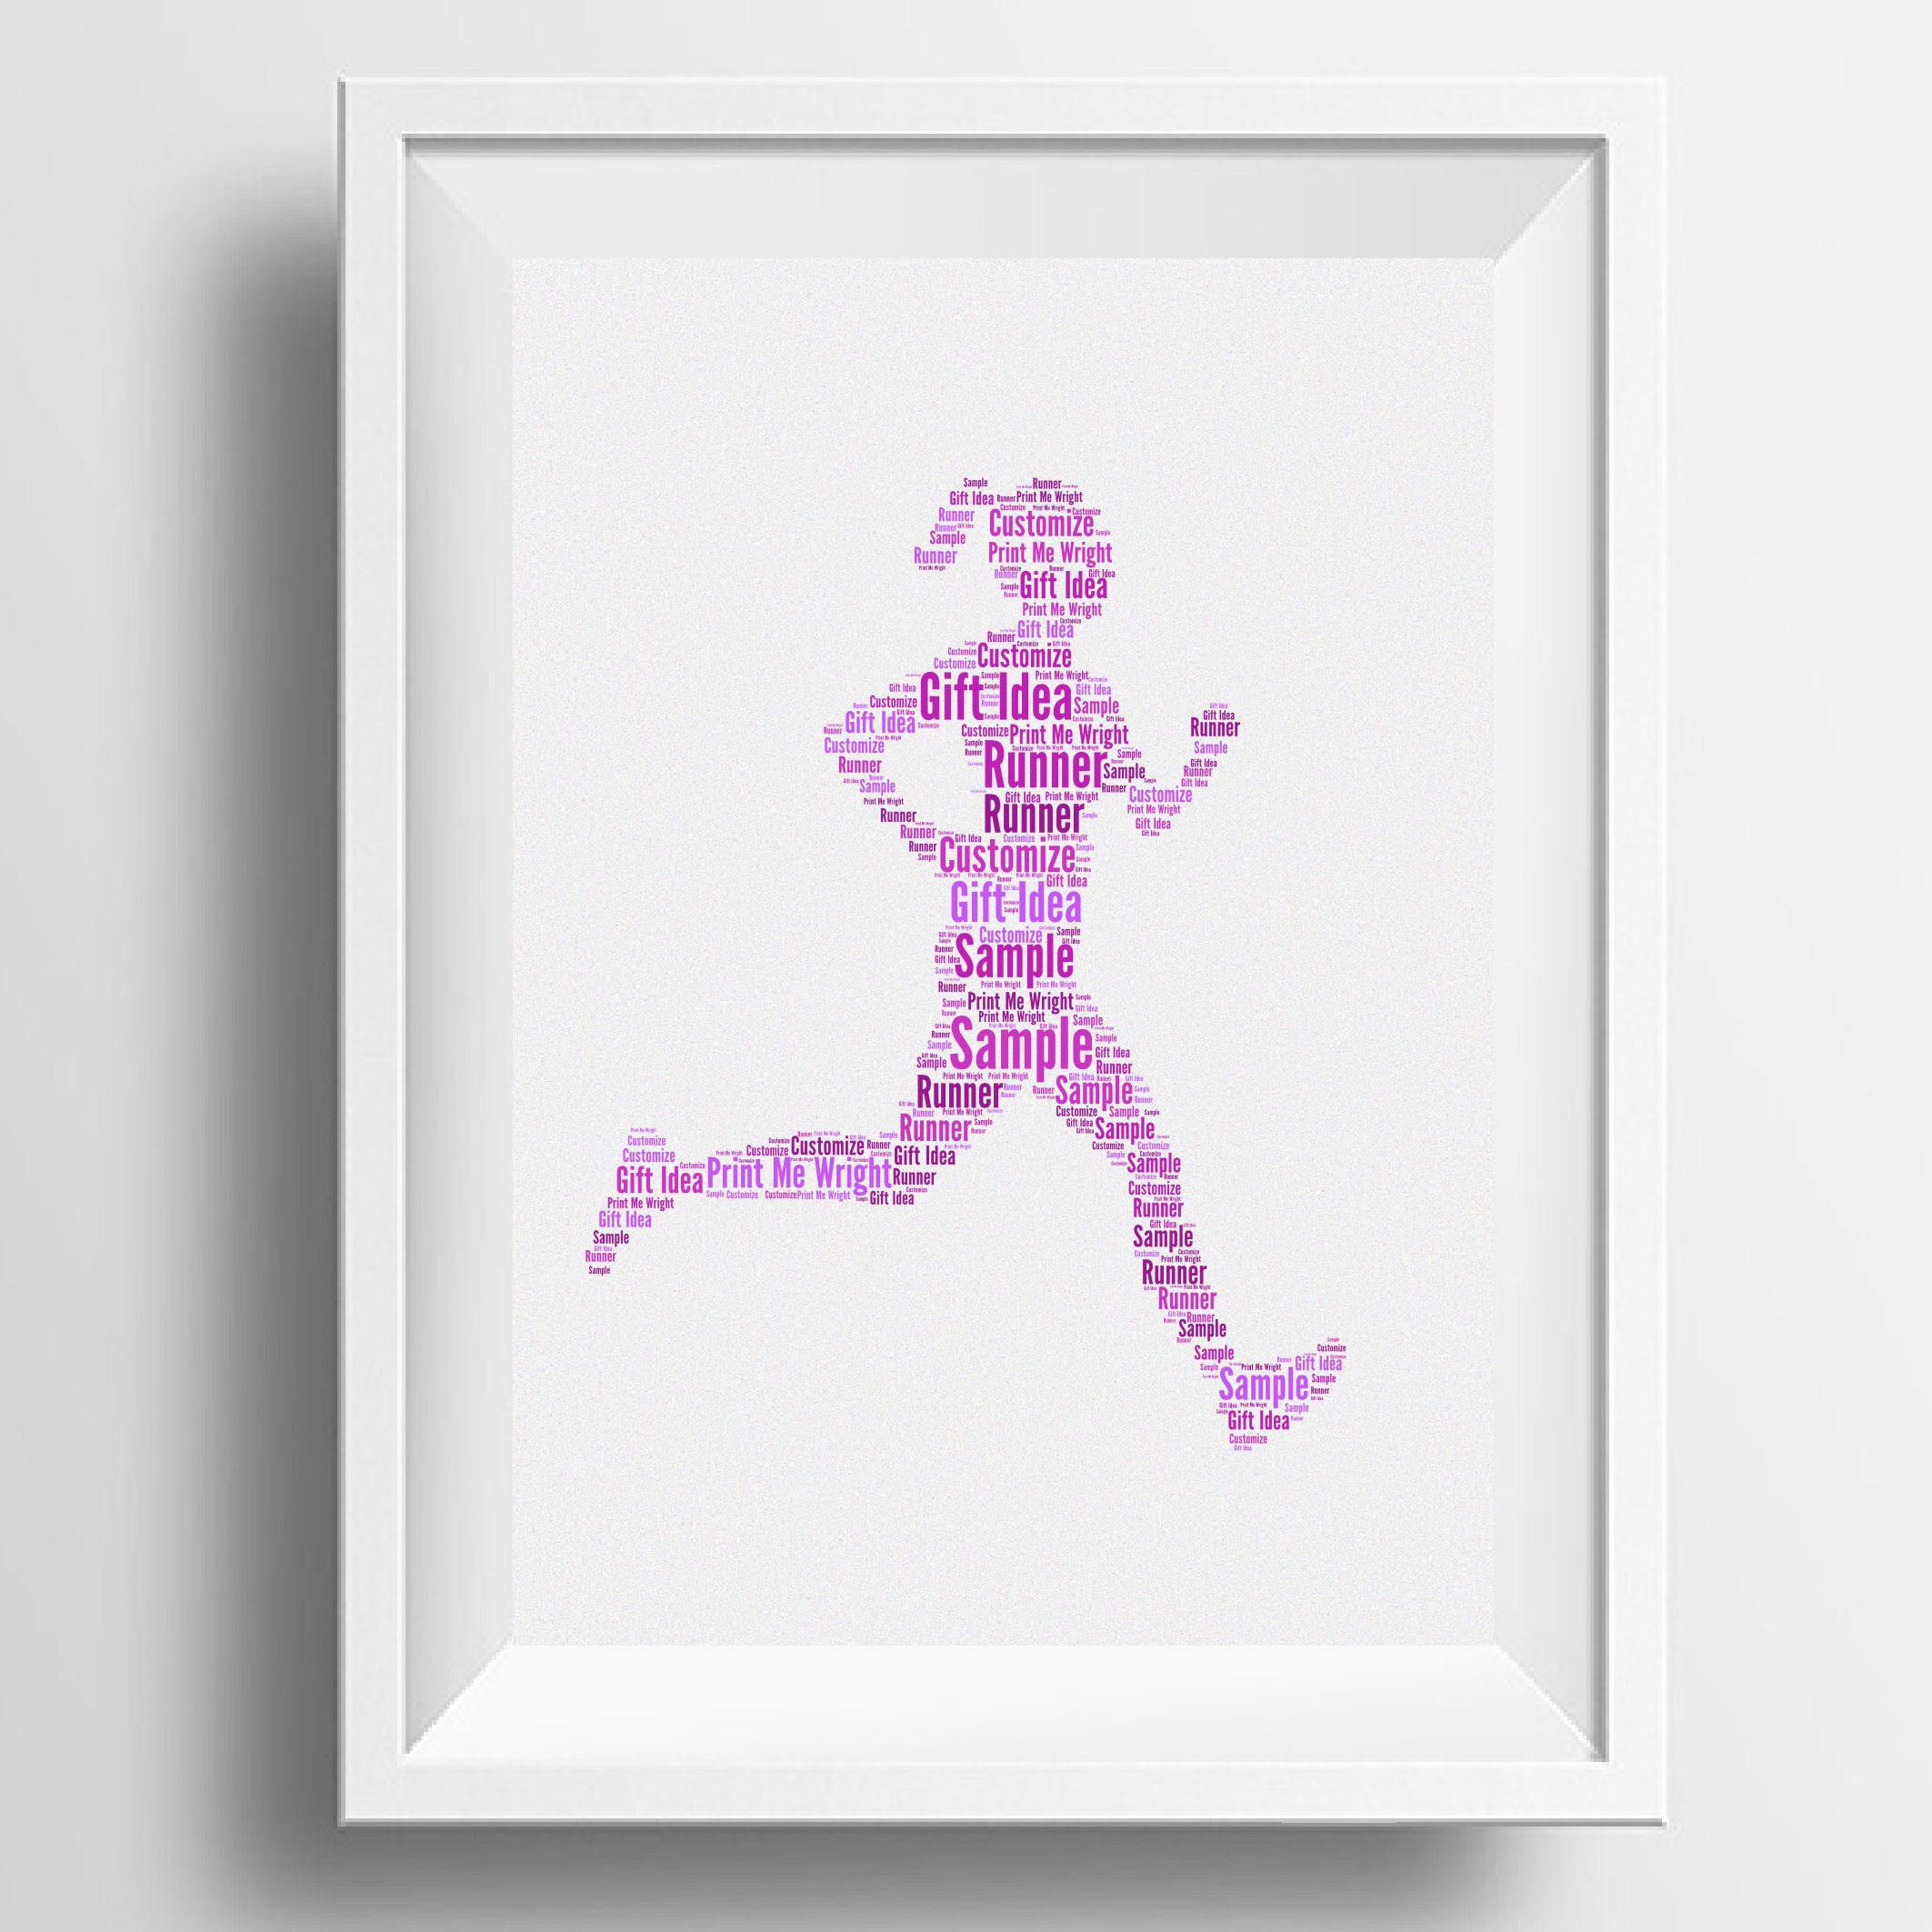 Personalised Word Art Female Runner Image Your Own Words Gift Idea For Christmas Birthday Runners Marathon By PrintMeWright On